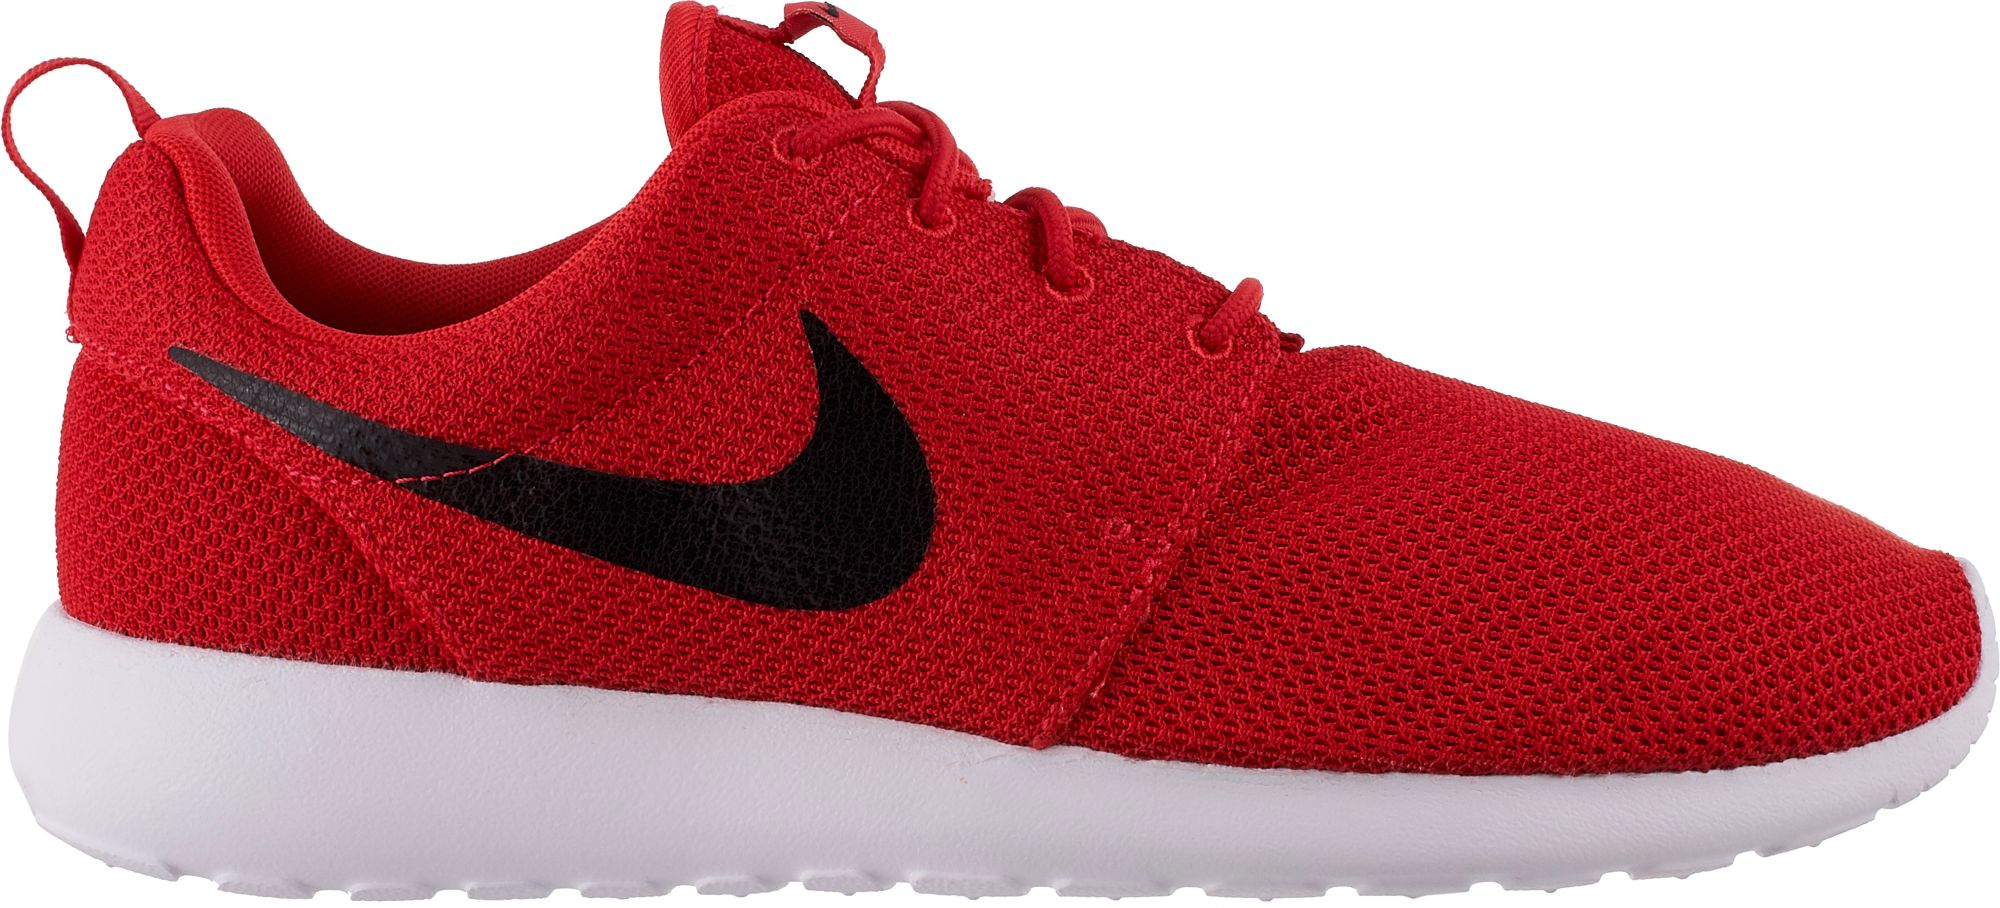 free shipping 804b5 8a37c canada nike roshe one shoes 4b72c 68251